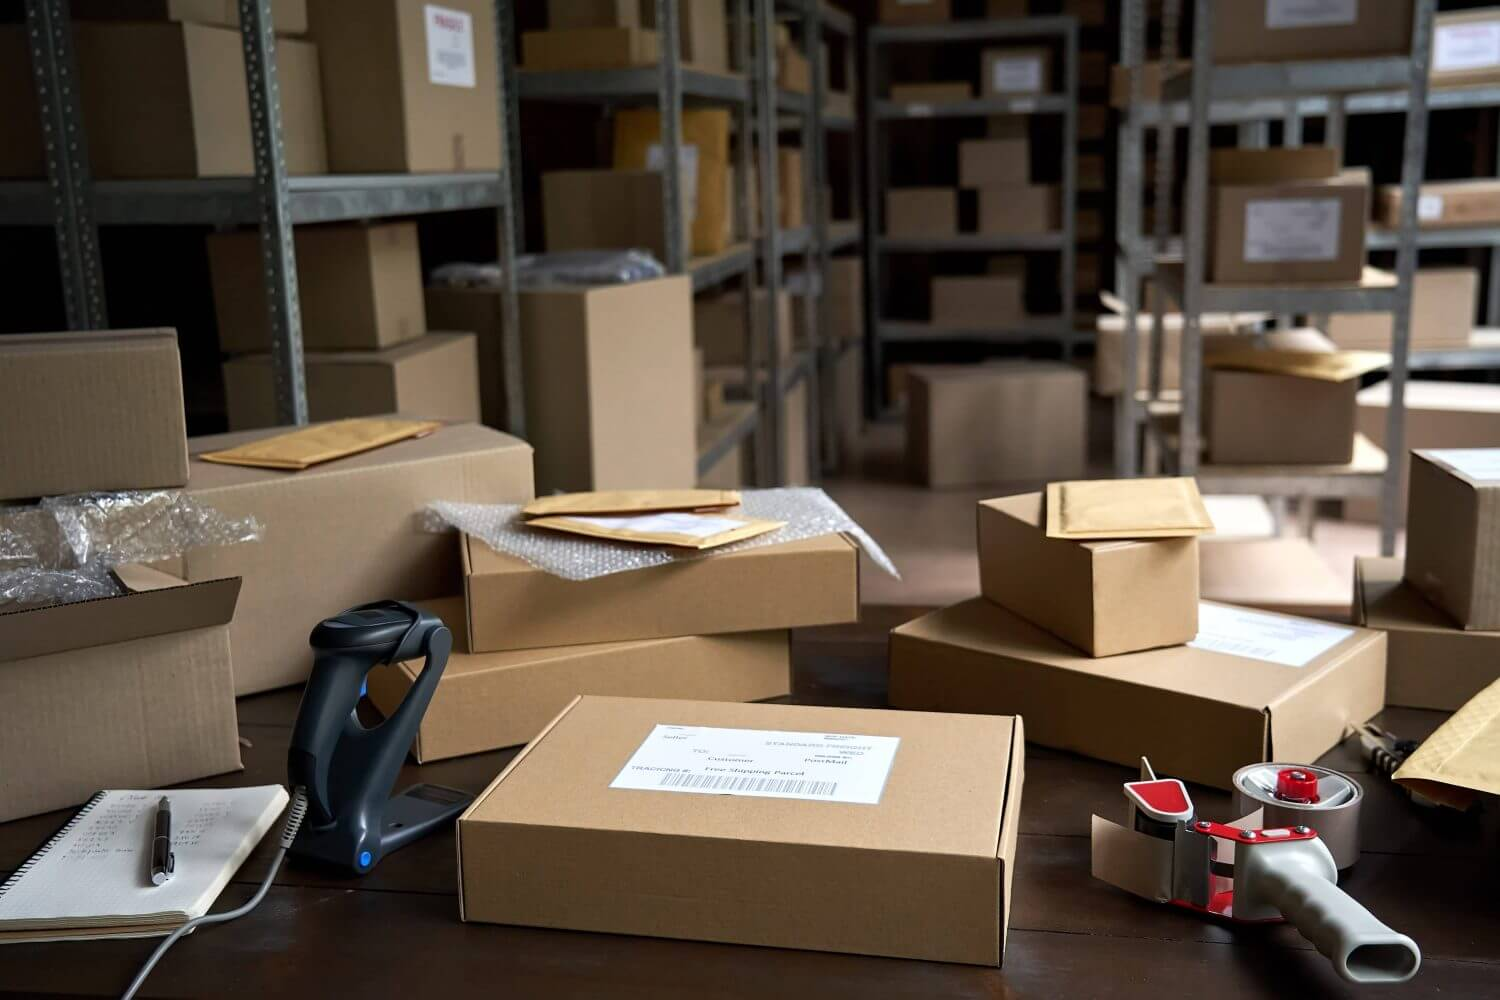 e-commerce businesses are suffering from overload orders and parcels.